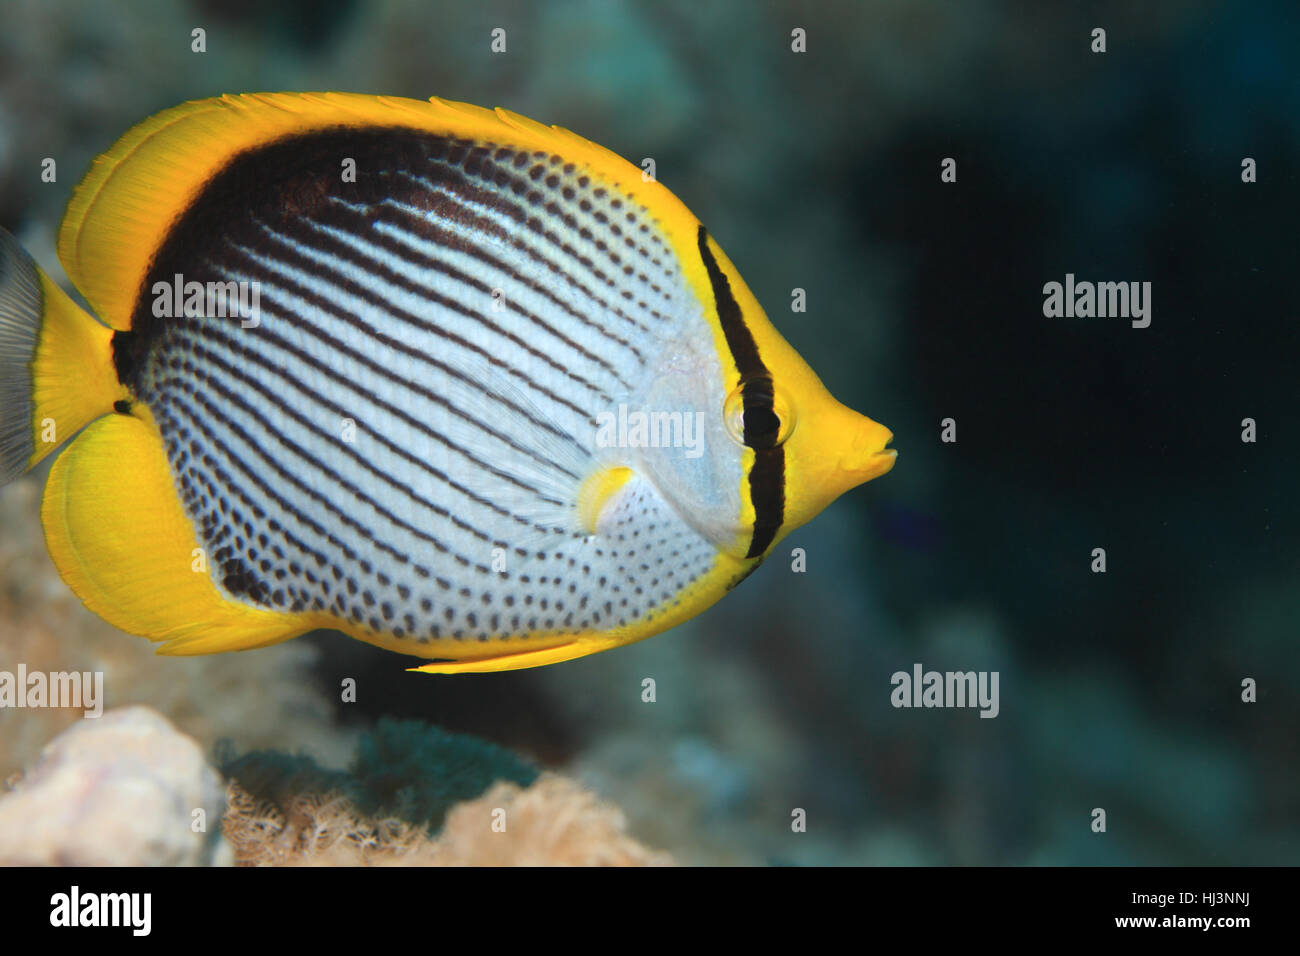 Blackbacked butterflyfish (Chaetodon melannotus) underwater in the coral reef of the Red sea Stock Photo